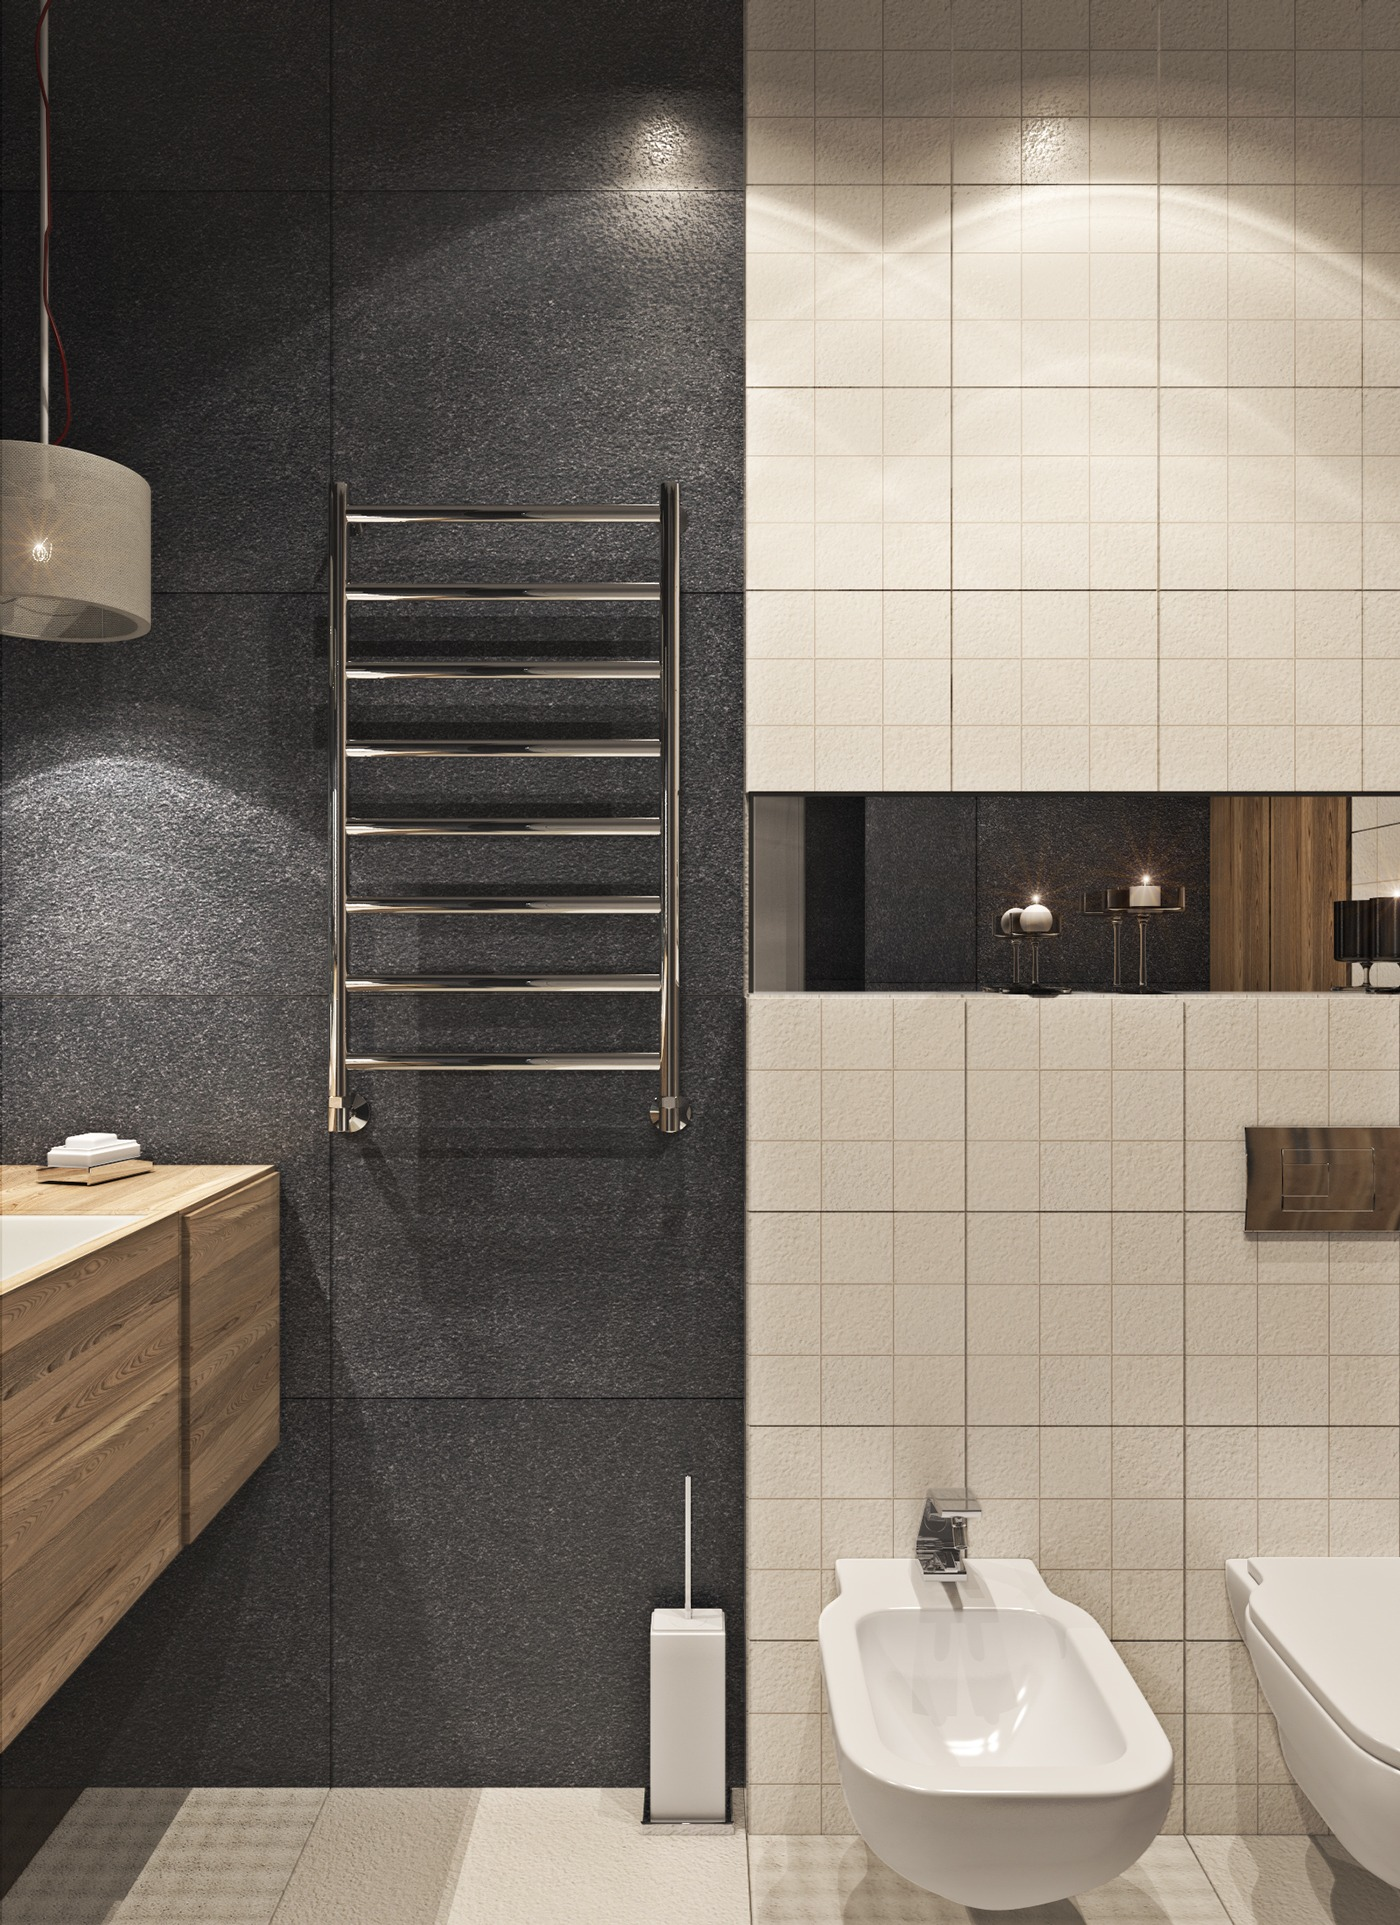 Towel Warmer - A contemporary apartment with lots of open space